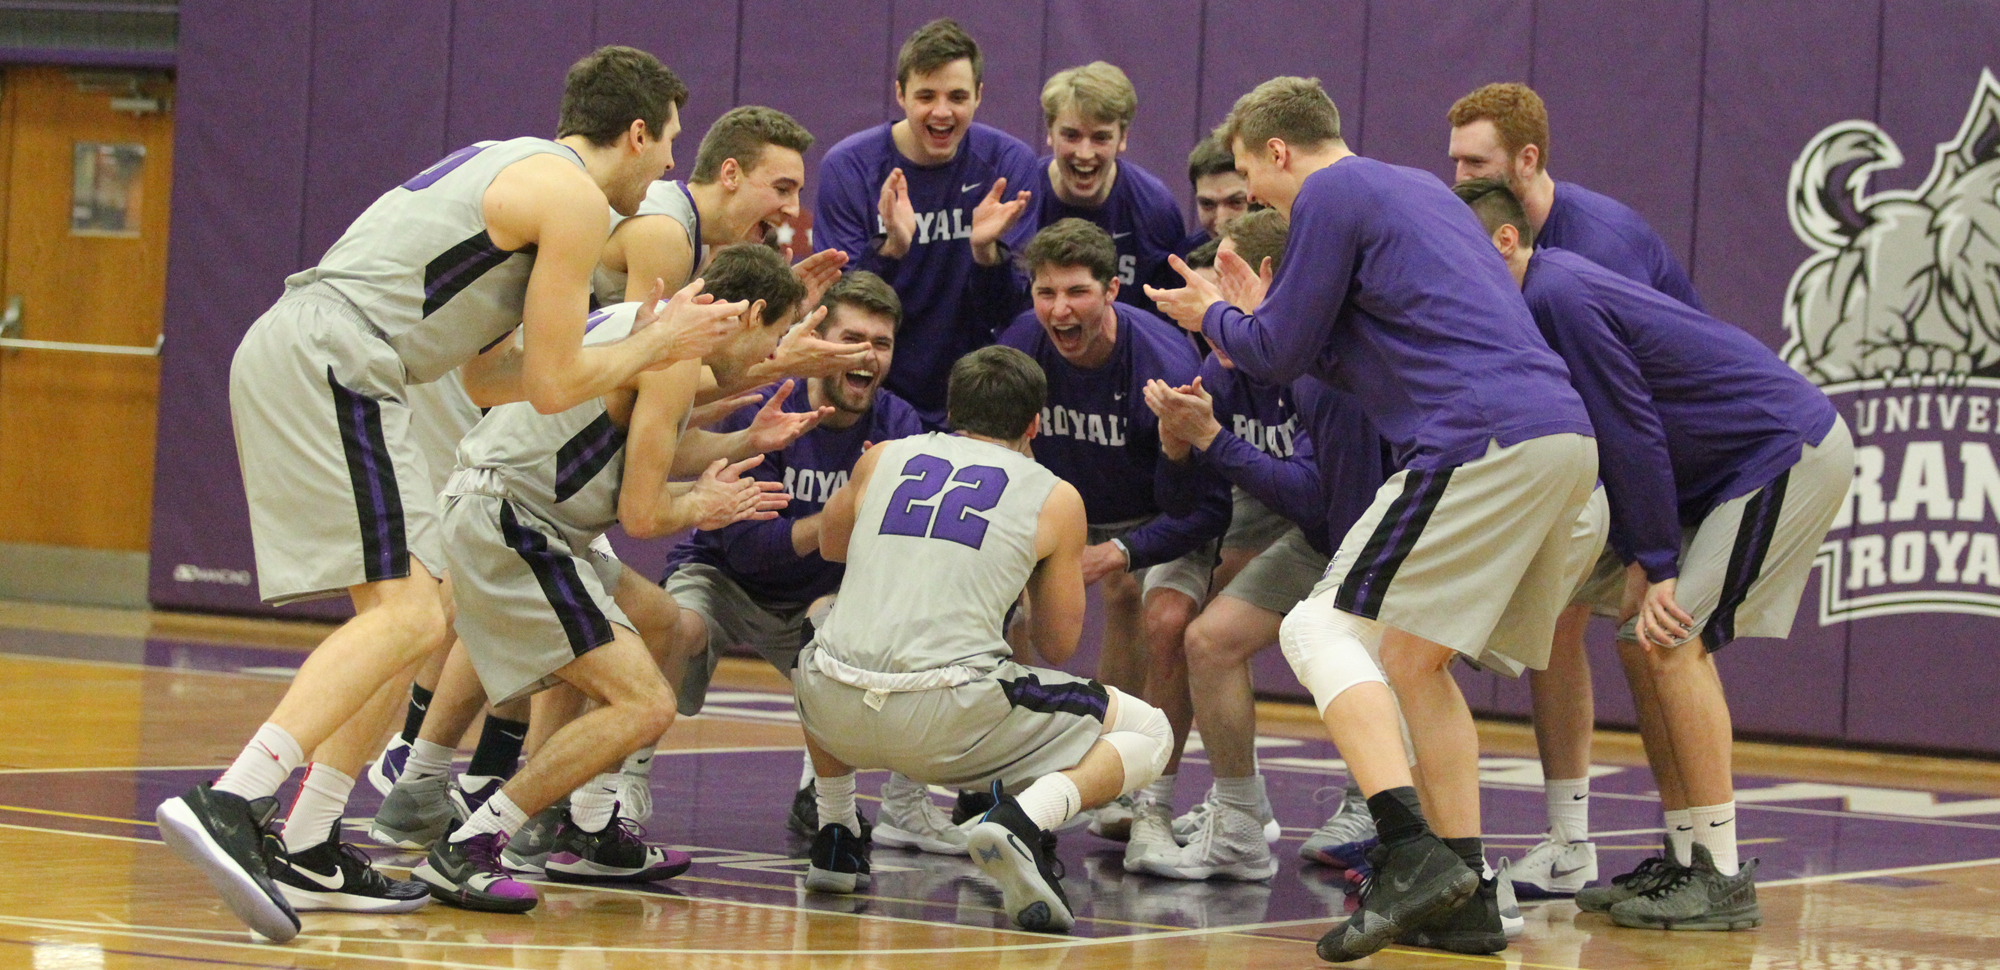 Scranton celebrated the program's 1,500th all-time win on Saturday with a 64-59 win at Juniata. © Photo by Timothy R. Dougherty / doubleeaglephotography.com